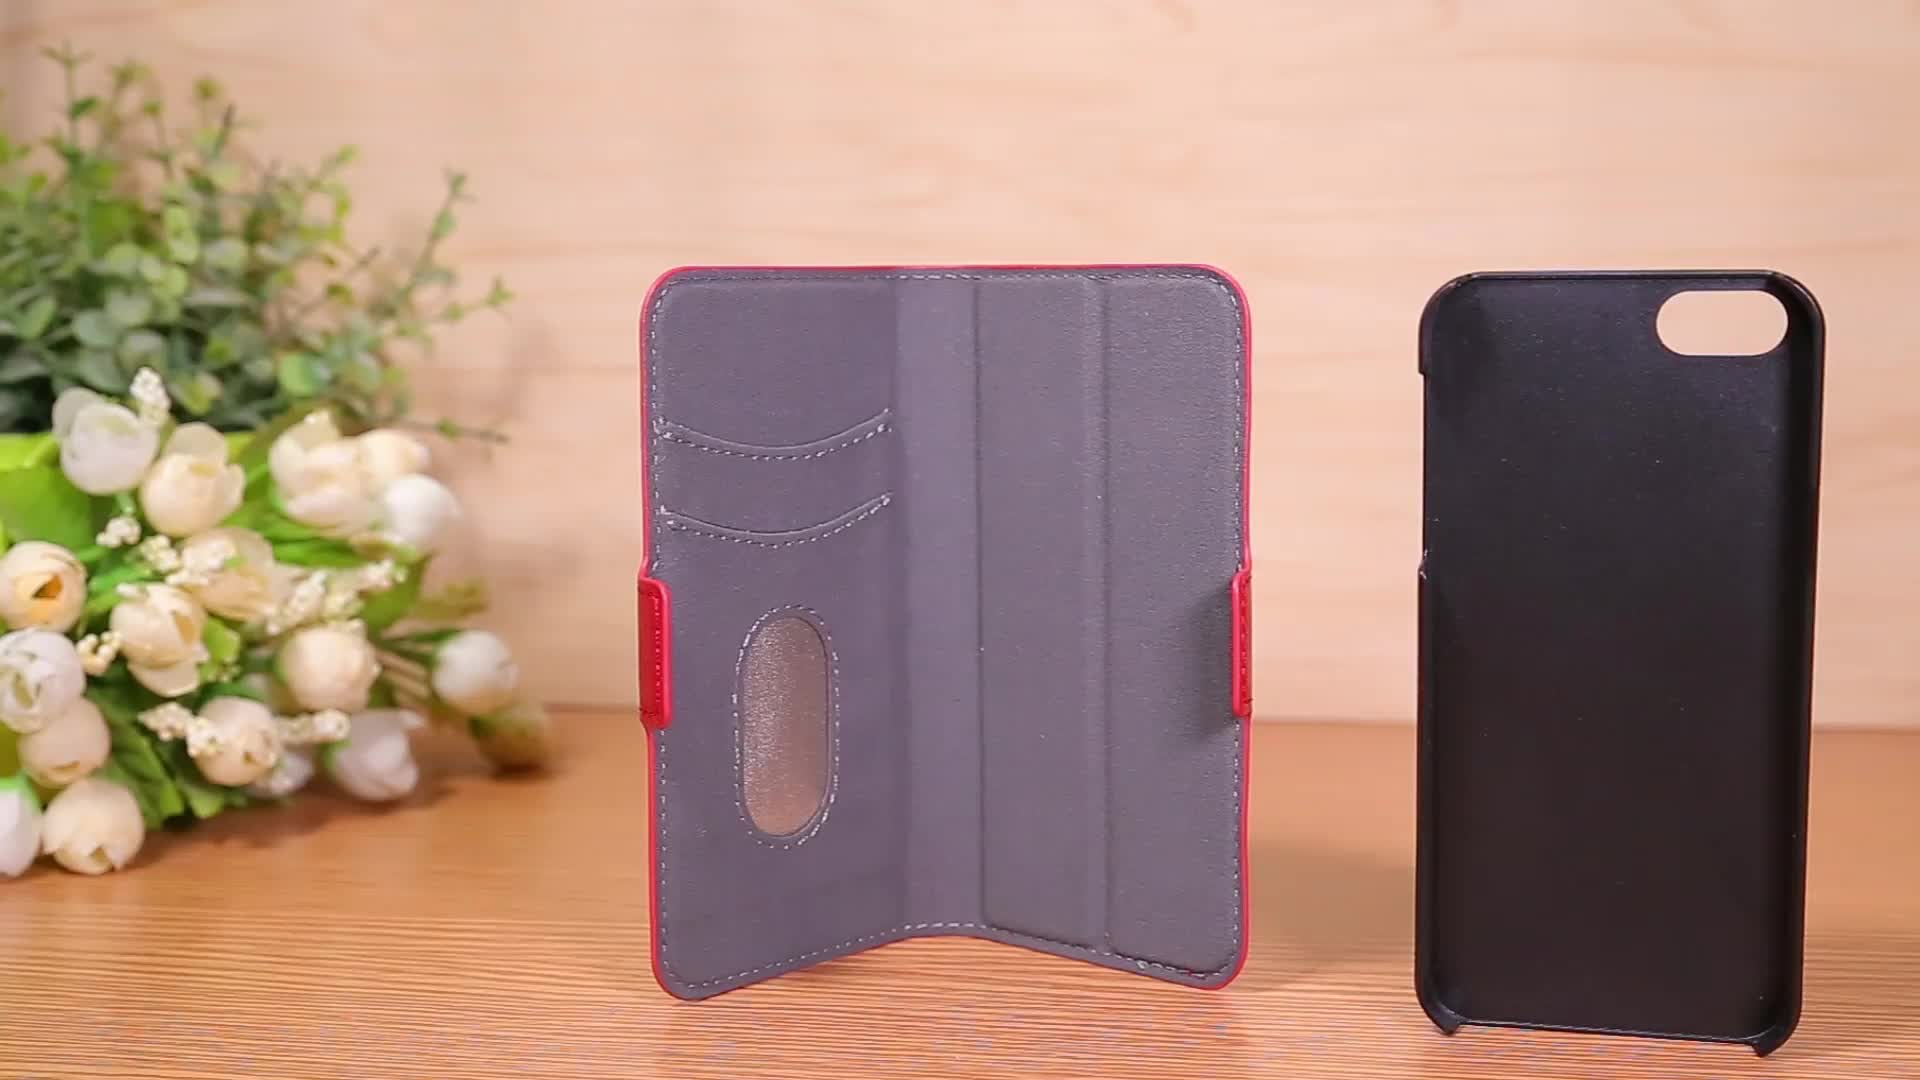 All In One Detachable Magnet Card Holder Leather Flip Phone Case Cover For Apple iPhone 7 Plus